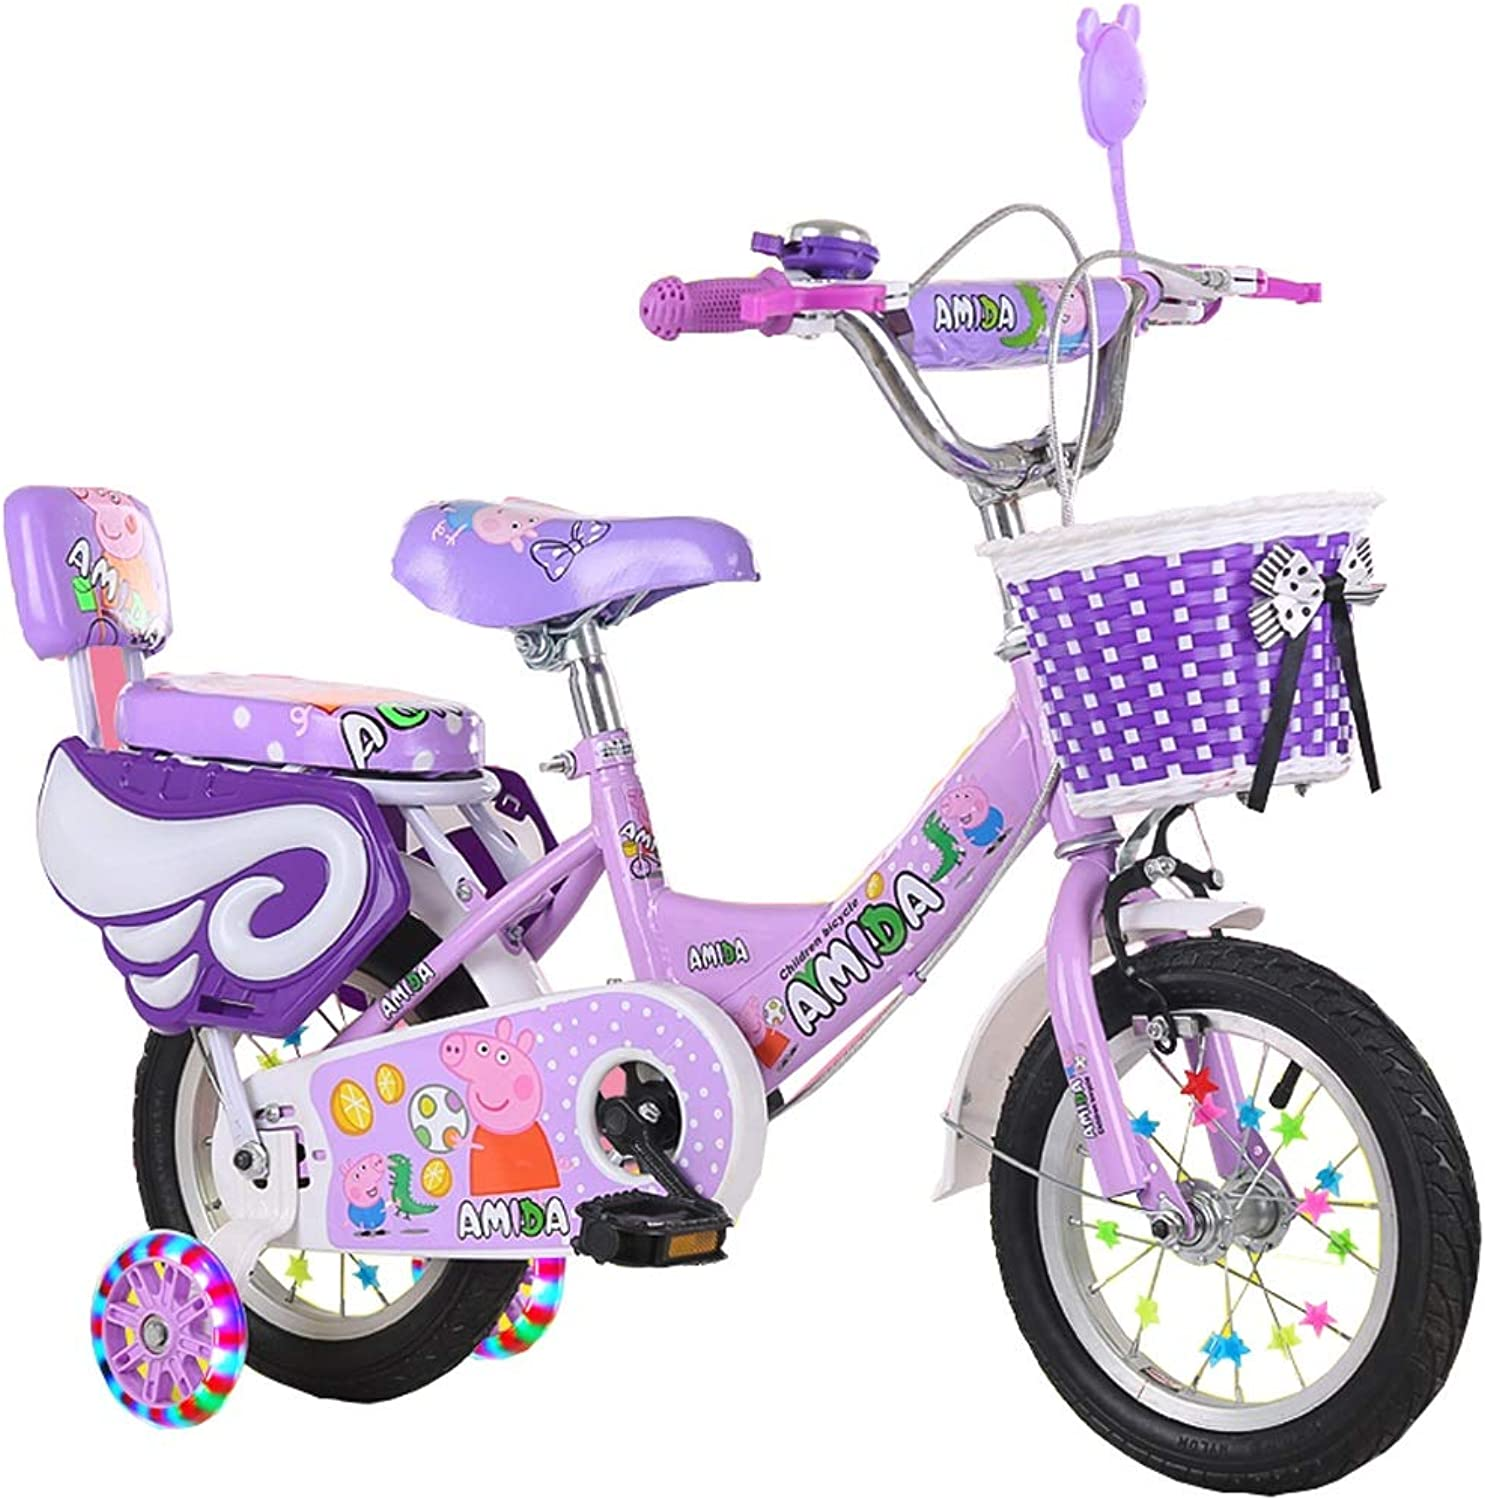 Minmin Kids Bike Boy's And Girl's Bicycle With Training Wheels And Basket For Kids, 16